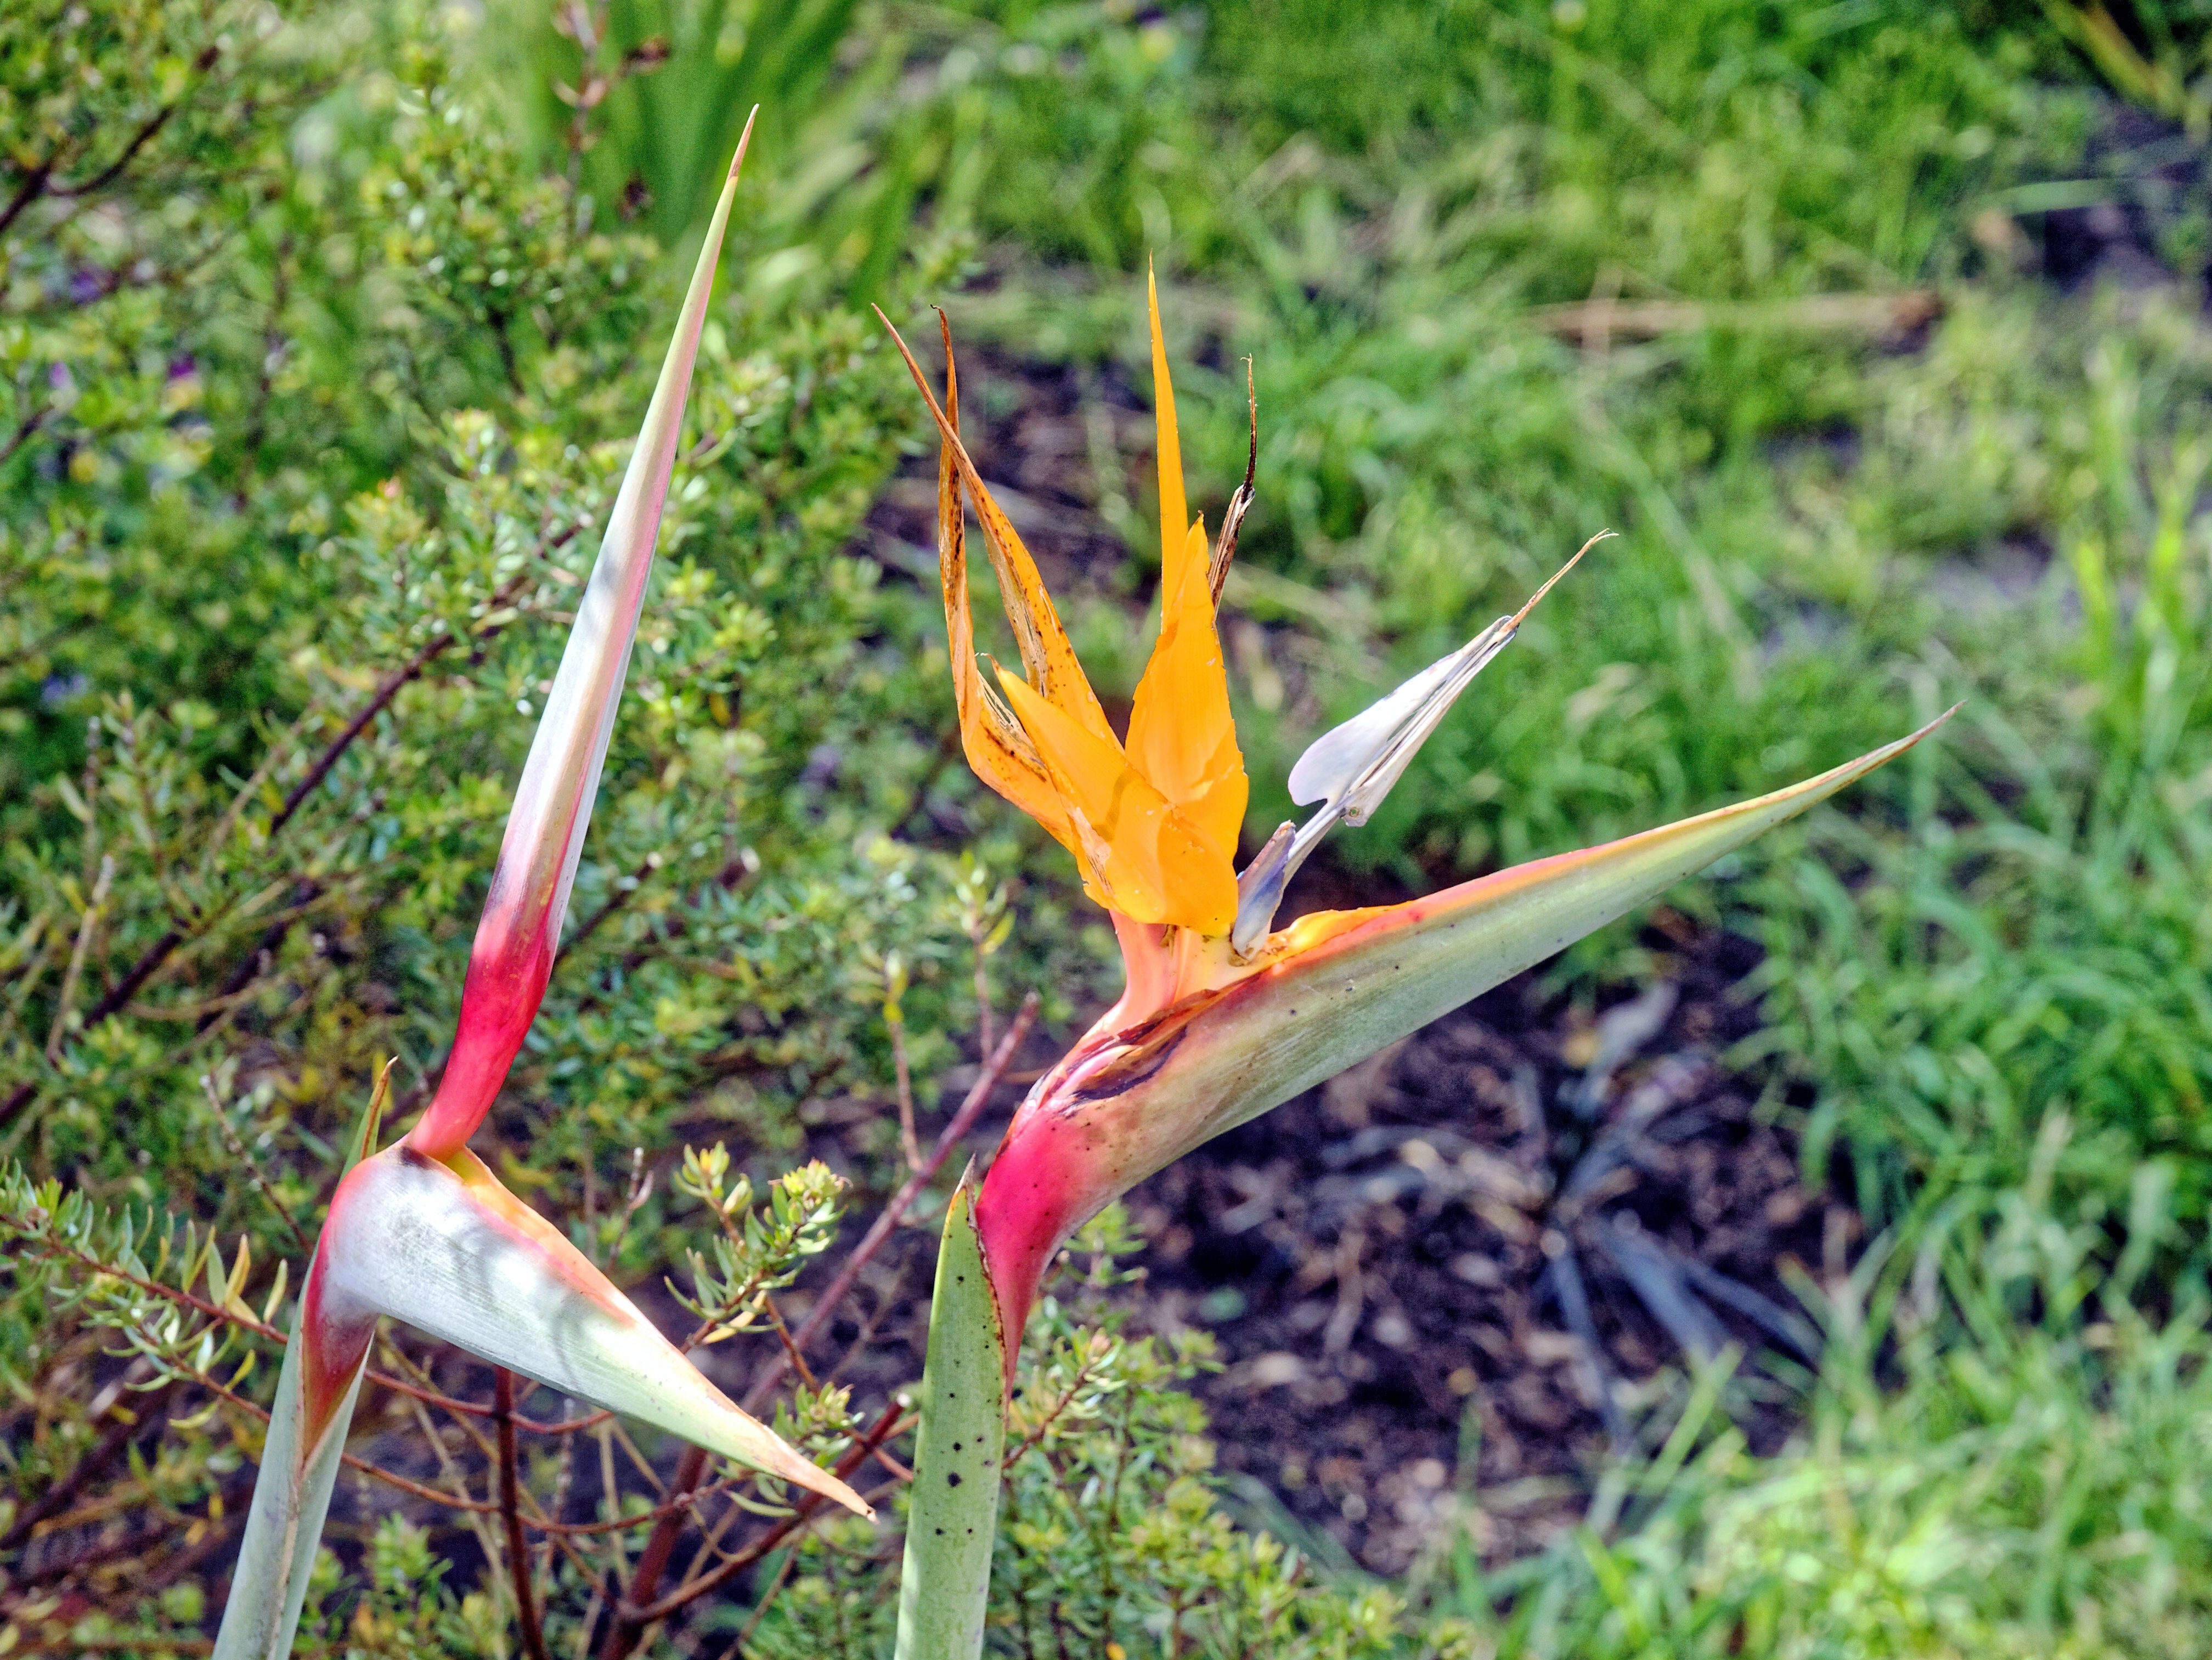 This should be Strelitzia-1.jpeg.  Is it missing?